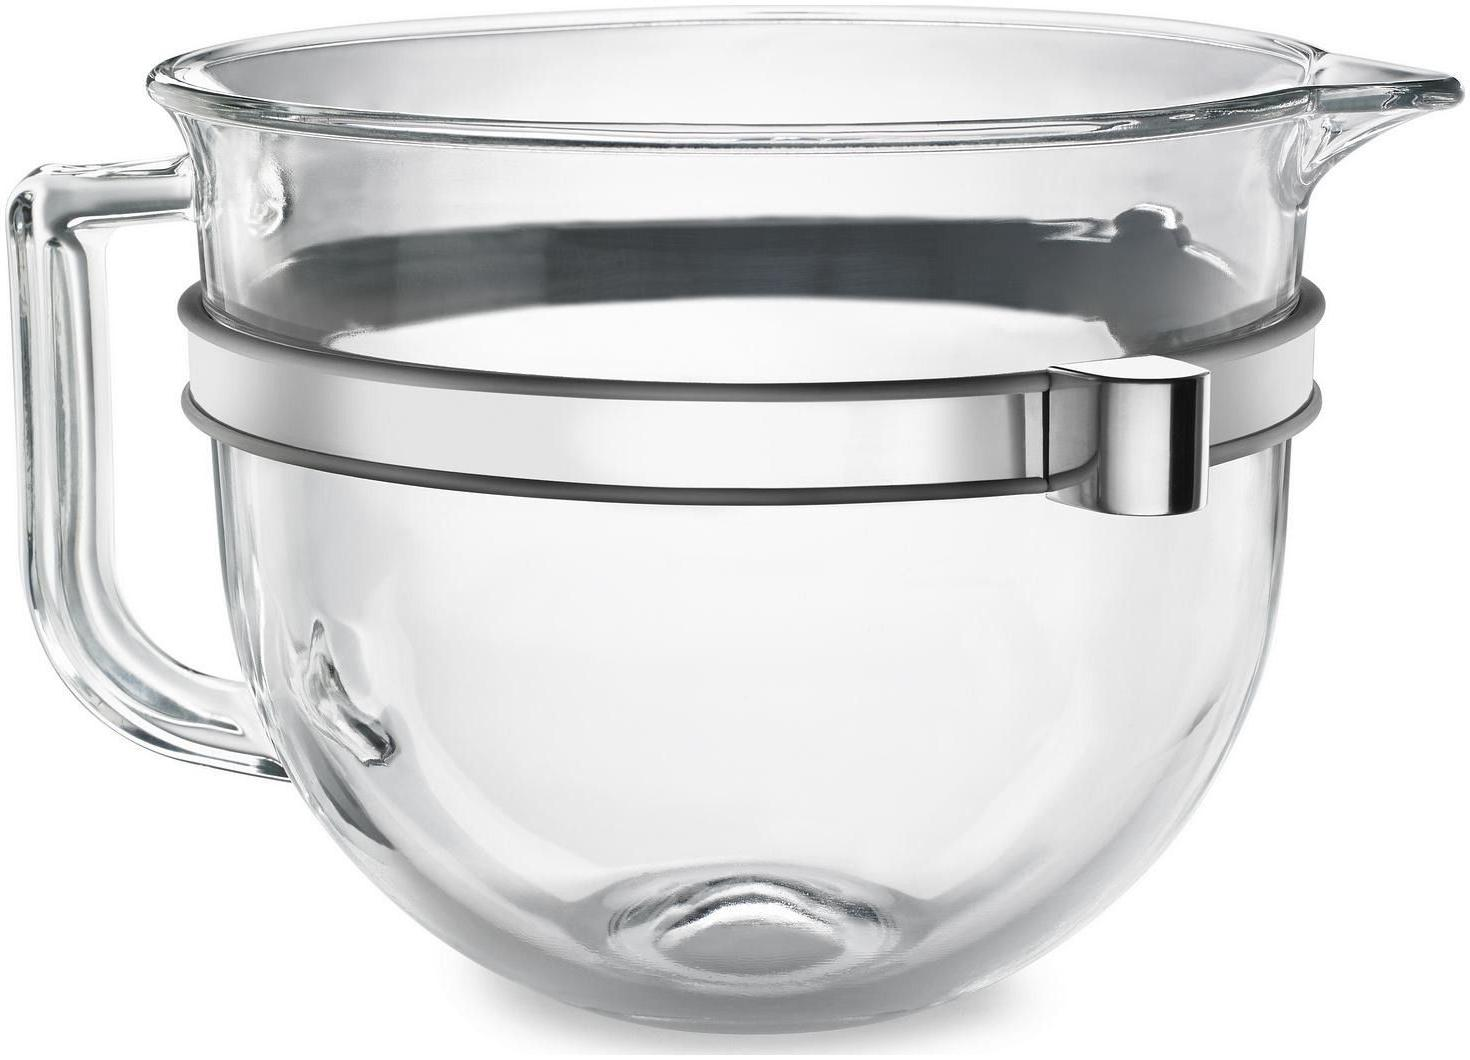 New KF26M2X 6-Qt With Bowl Colors